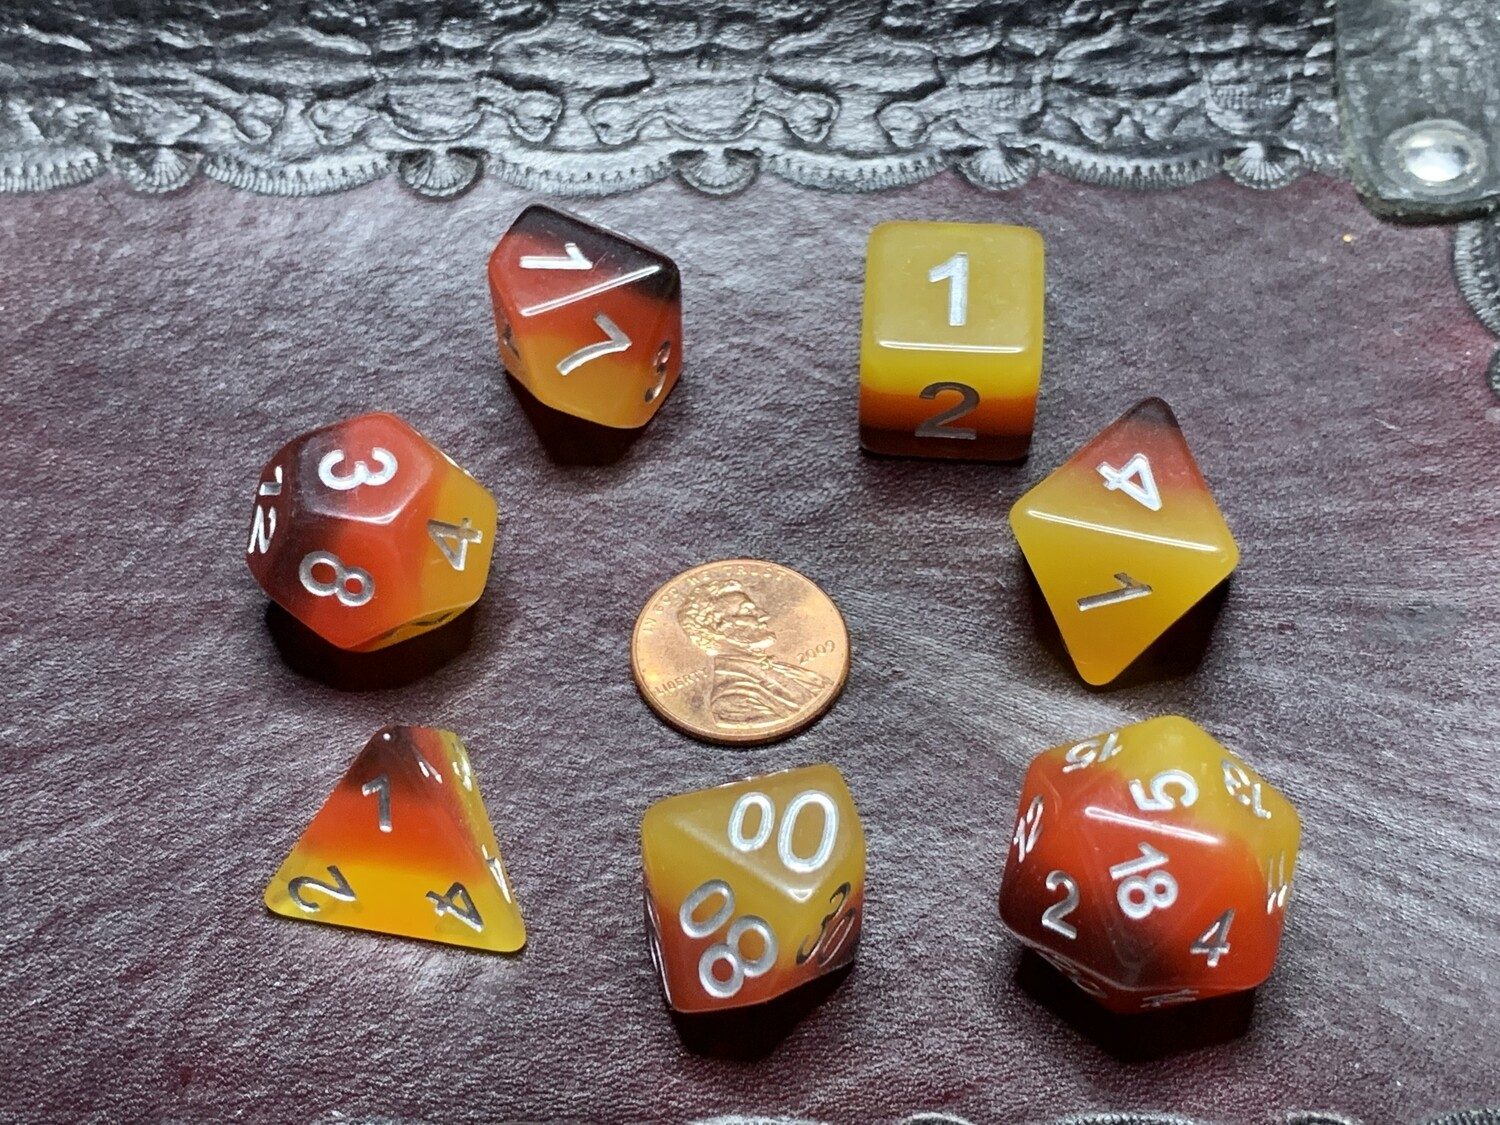 Standard Polyhedral 7 Die Dice Set - Opaque Tri-layer Brown Red Orange w White